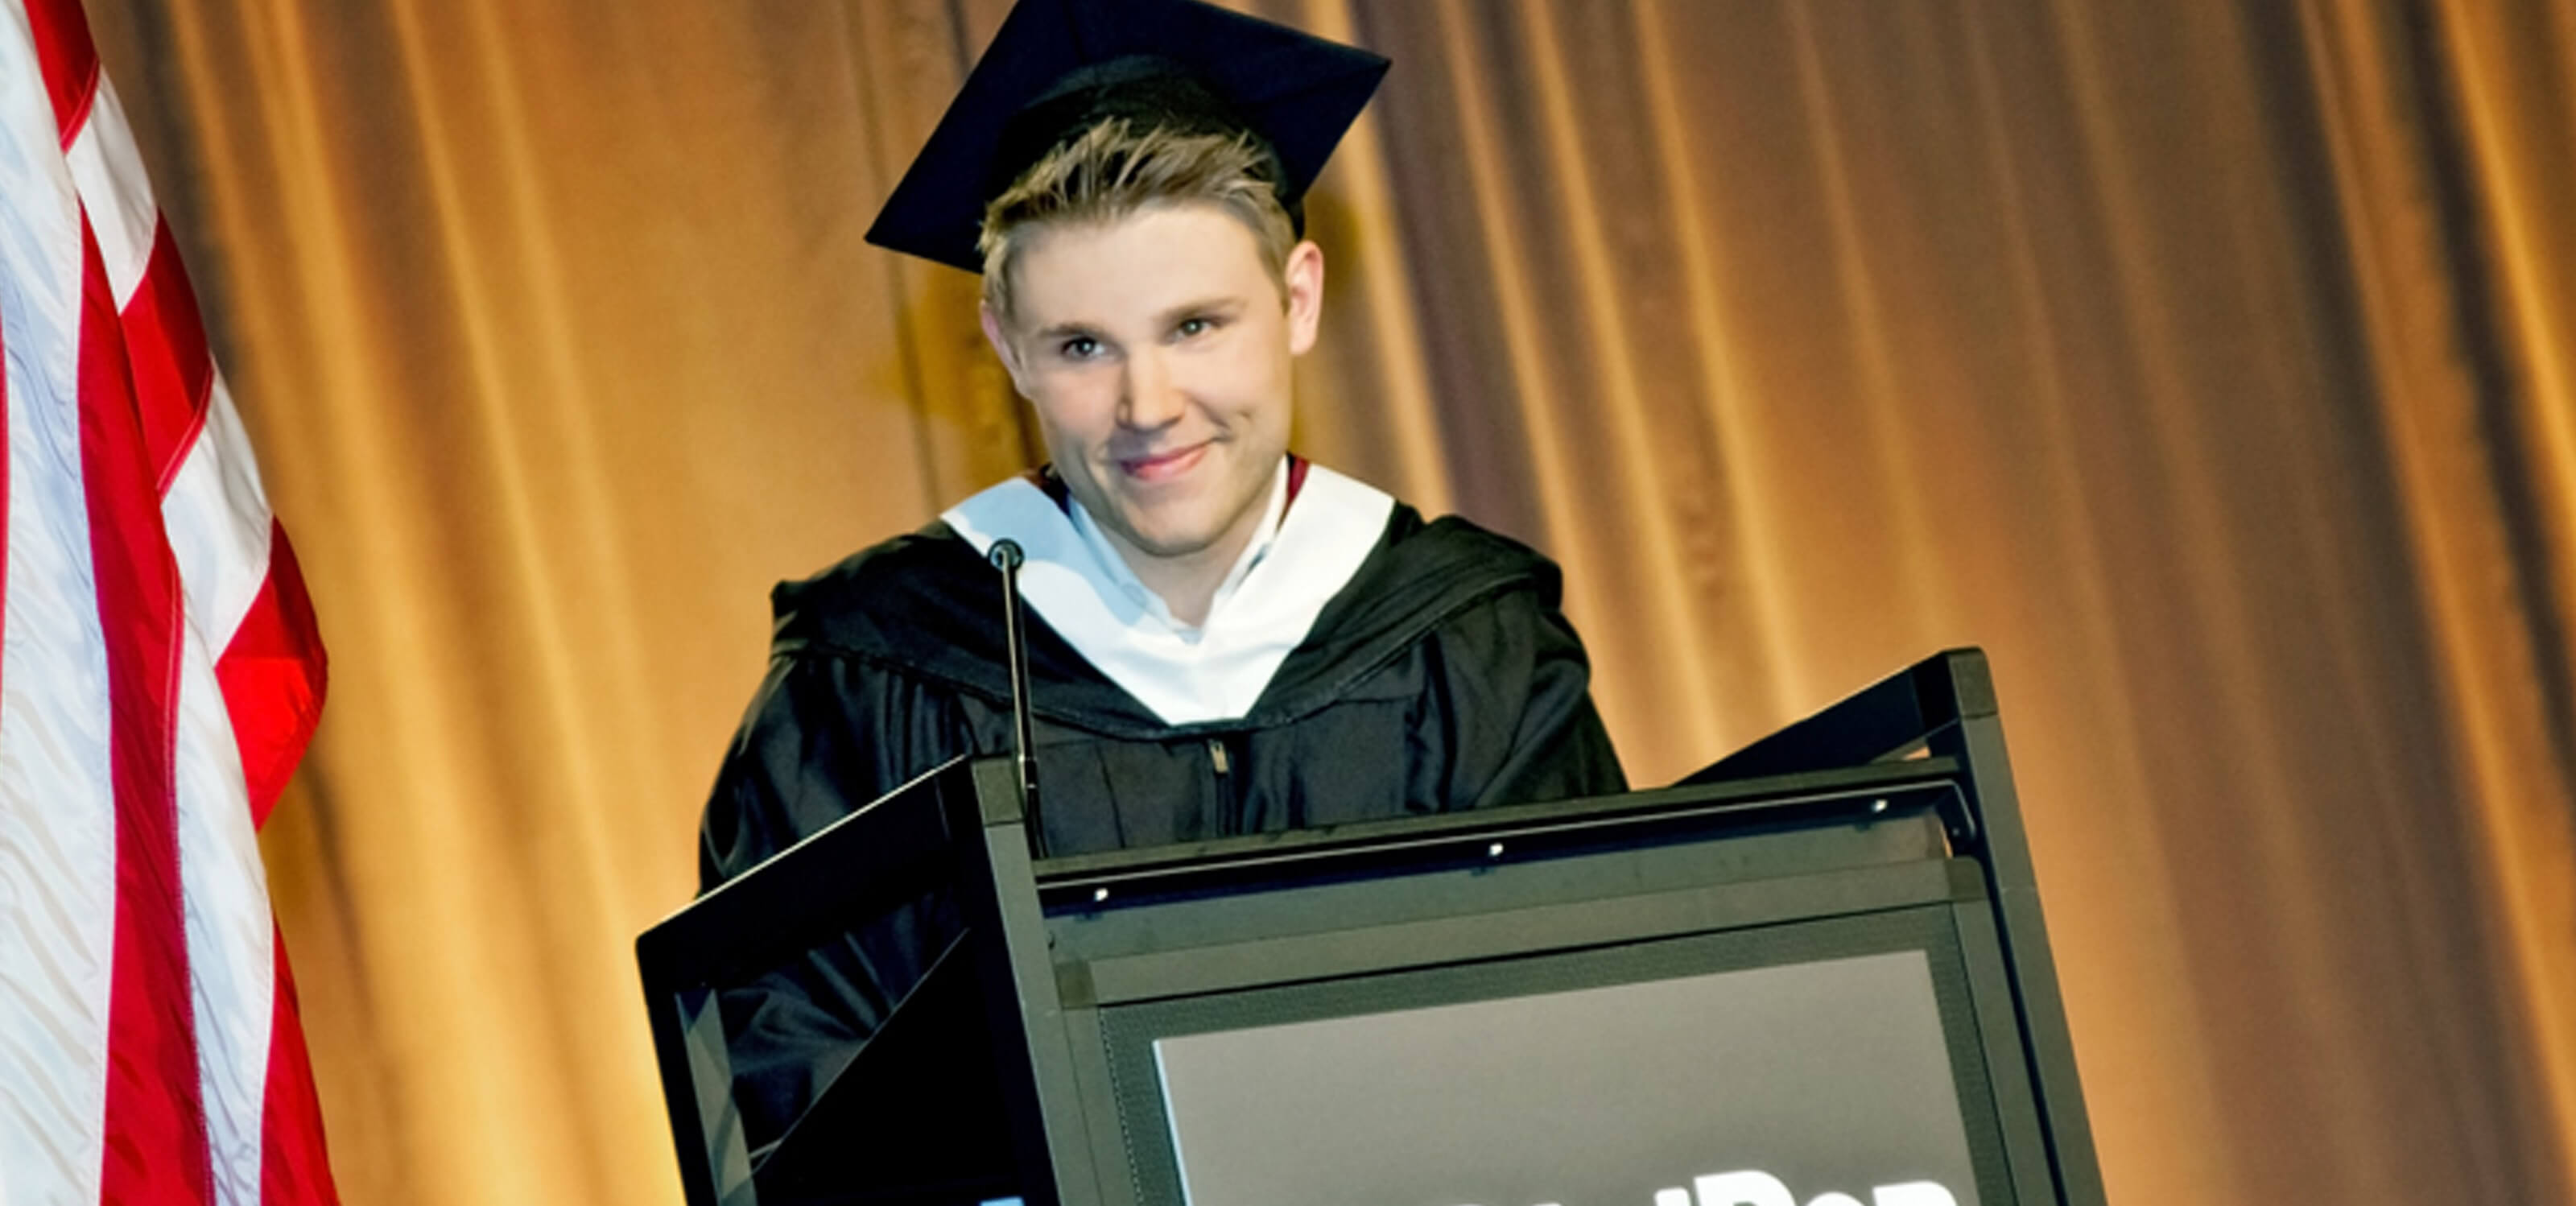 DigiPen graduate Kevin French speaking at the podium at the 2013 commencement ceremony